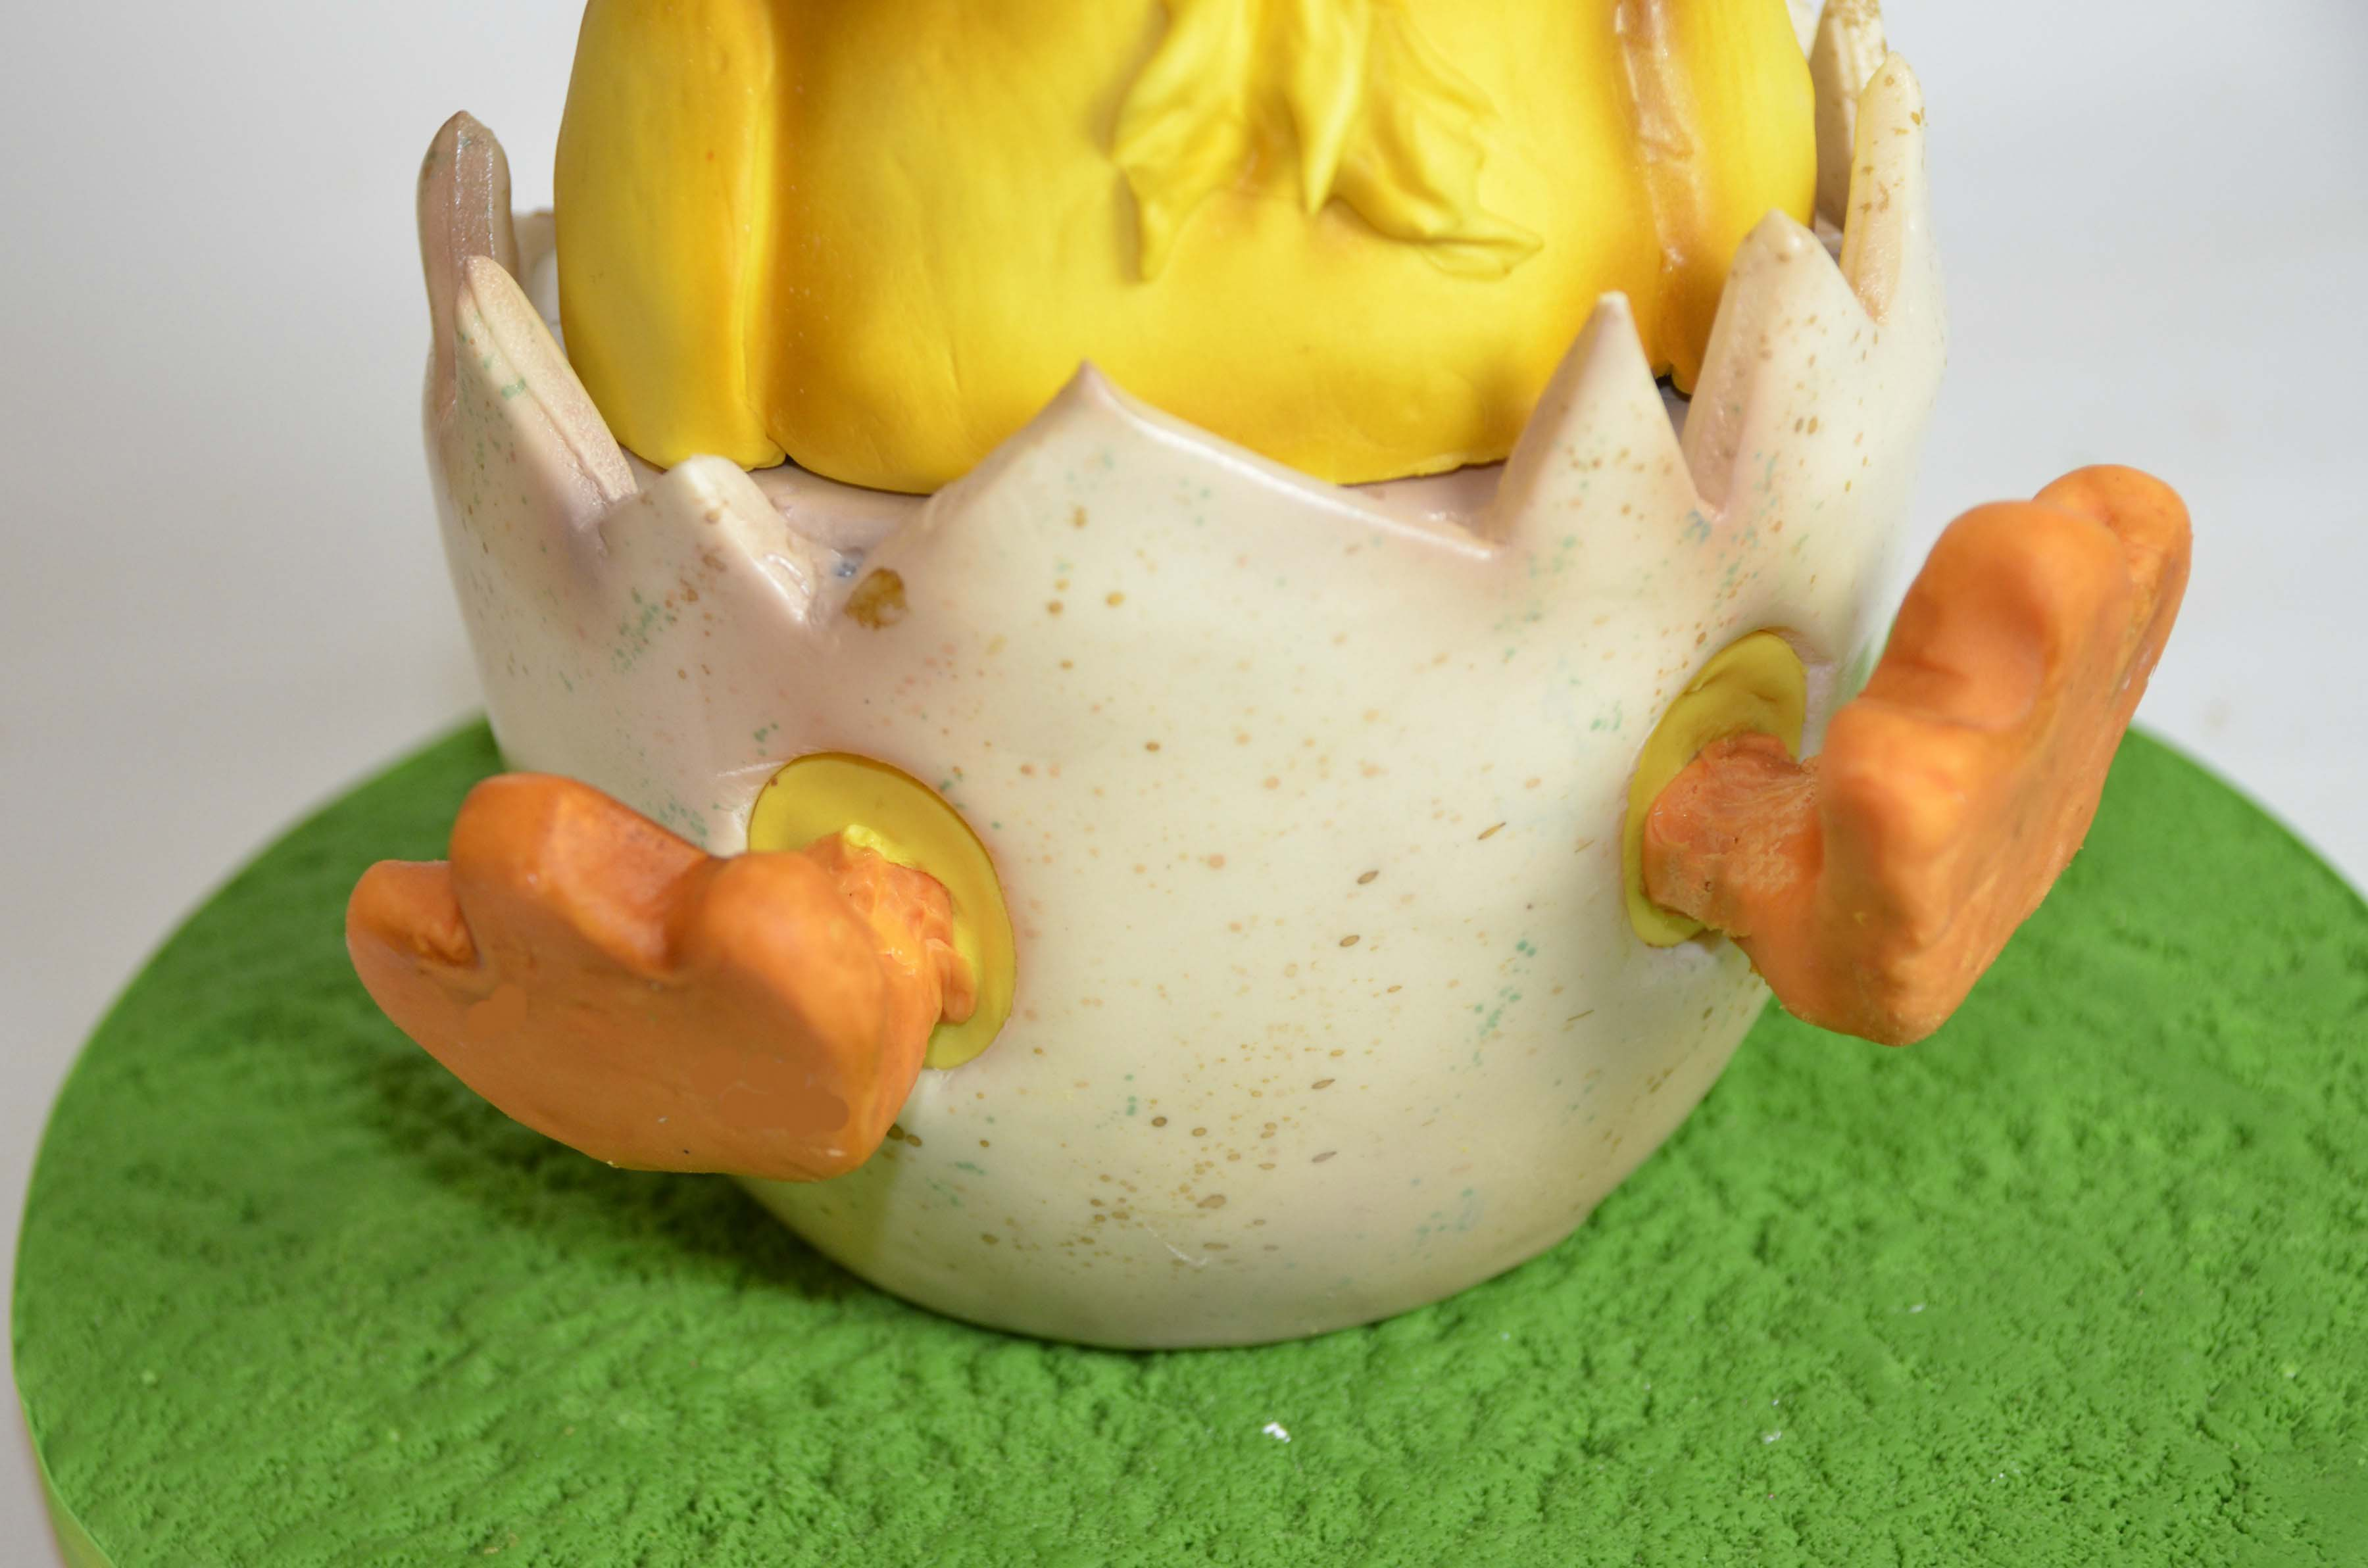 Chicks sugarpaste feet inserted in yellow holes